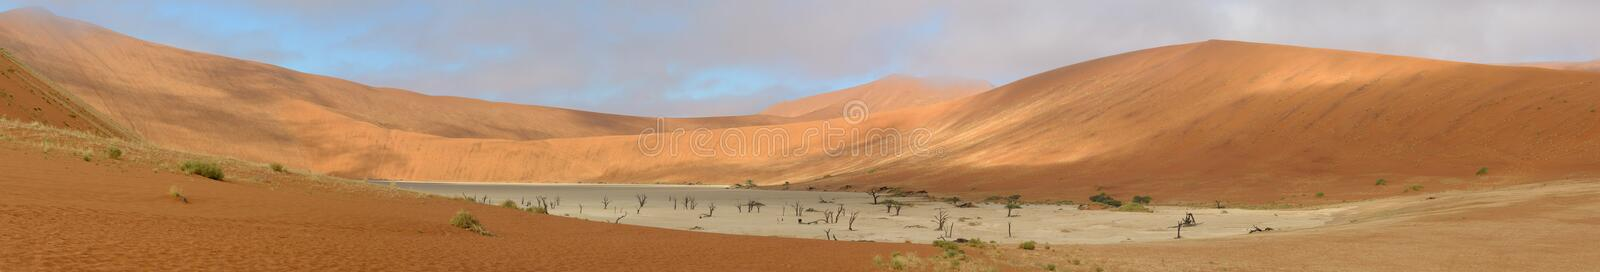 Deadvlei Panorama 8 stockfoto